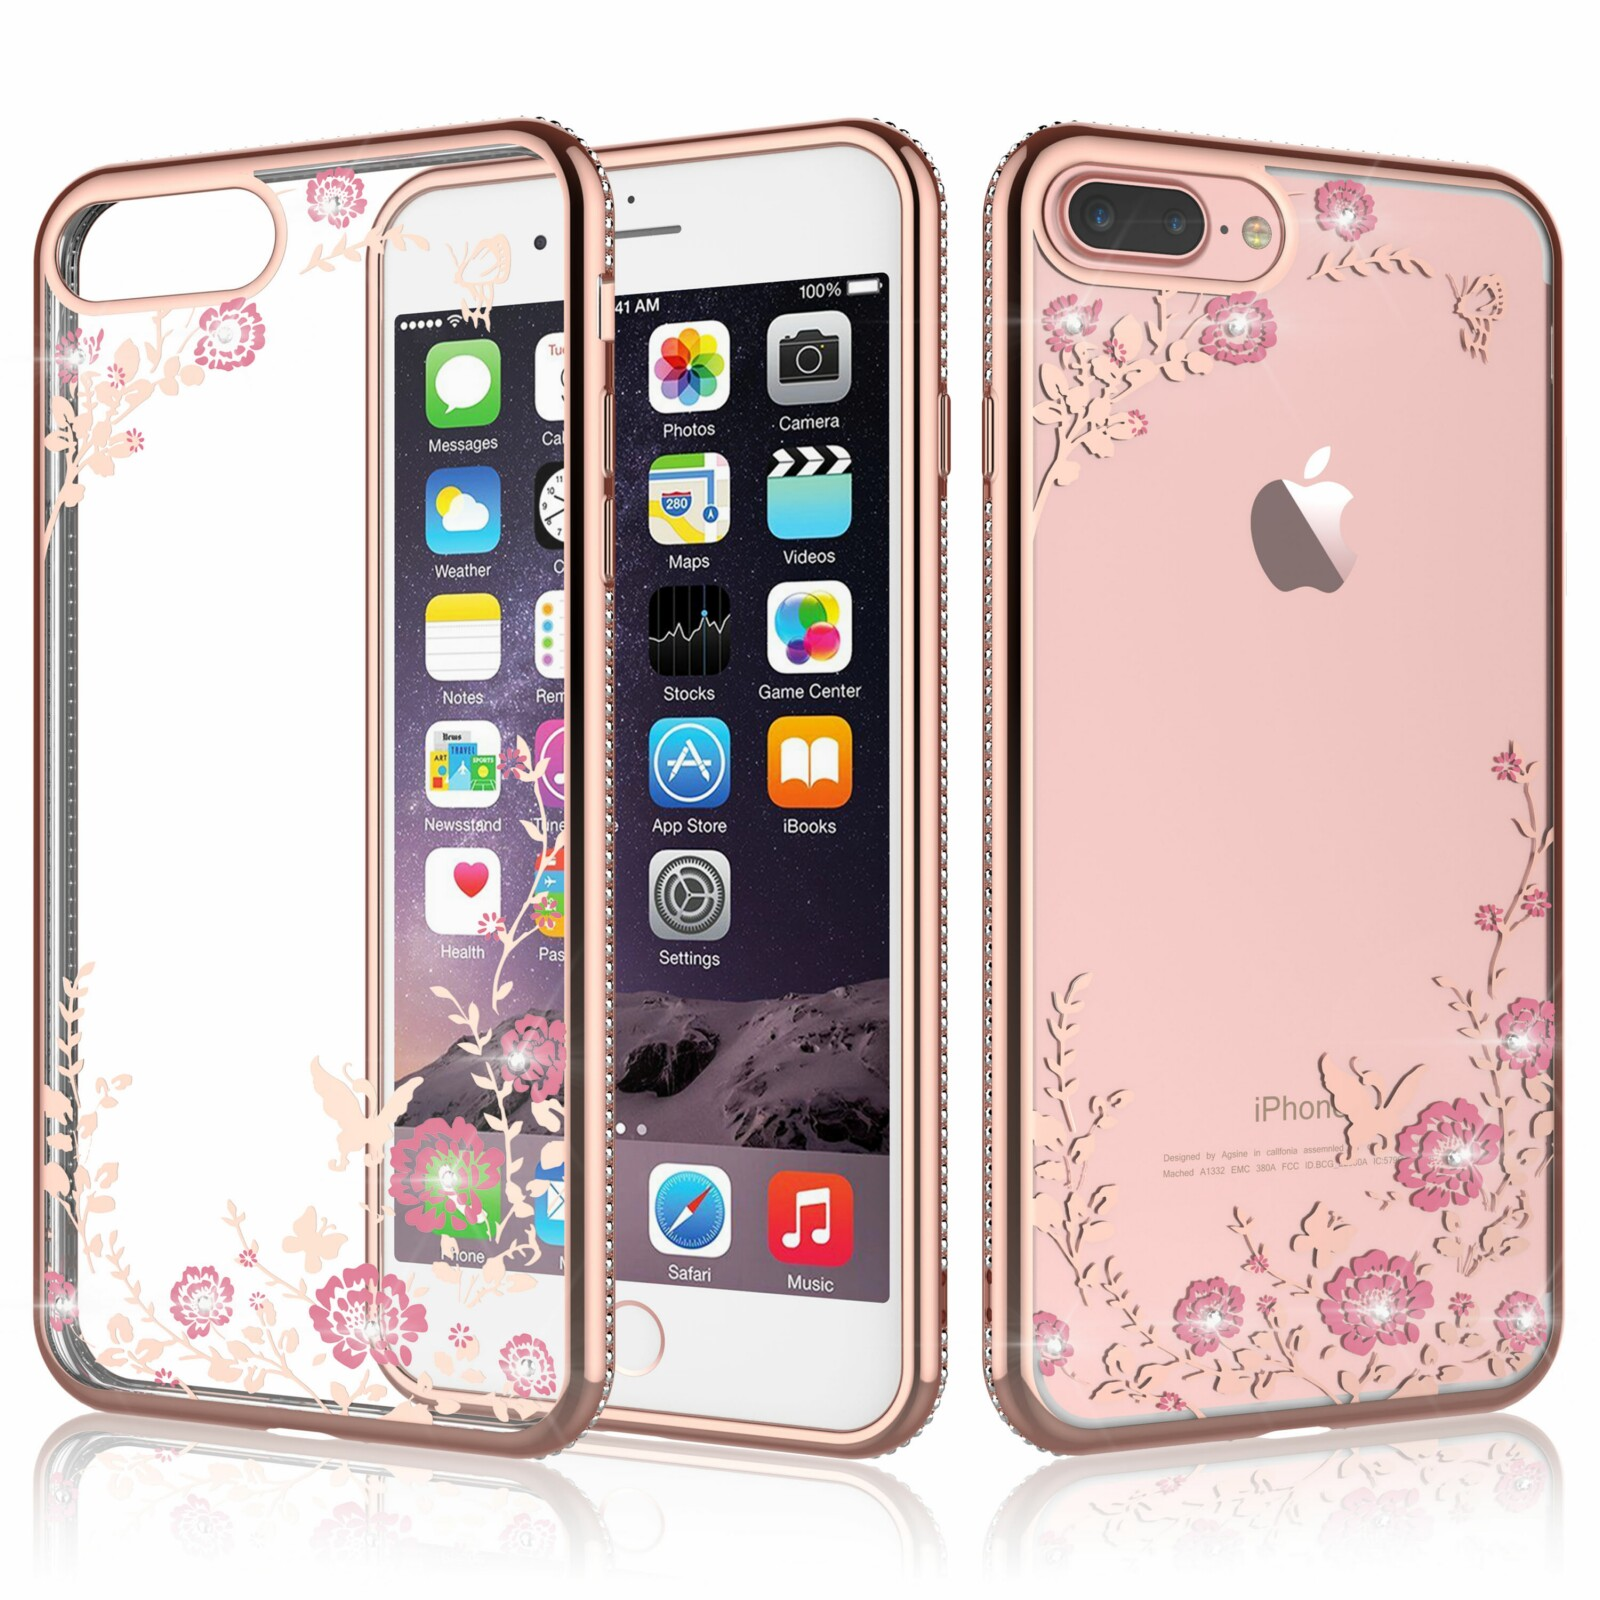 Tekcoo iPhone XS Max / XS / X / 8 Plus / 8 / 7 / 7 Plus / 6s / 6s Plus / 6 / 6 Plus Phone Case, TPU Case Luxury Bling Diamond Crystal Clear Soft TPU Silicone Back Cover with Cute Pattern